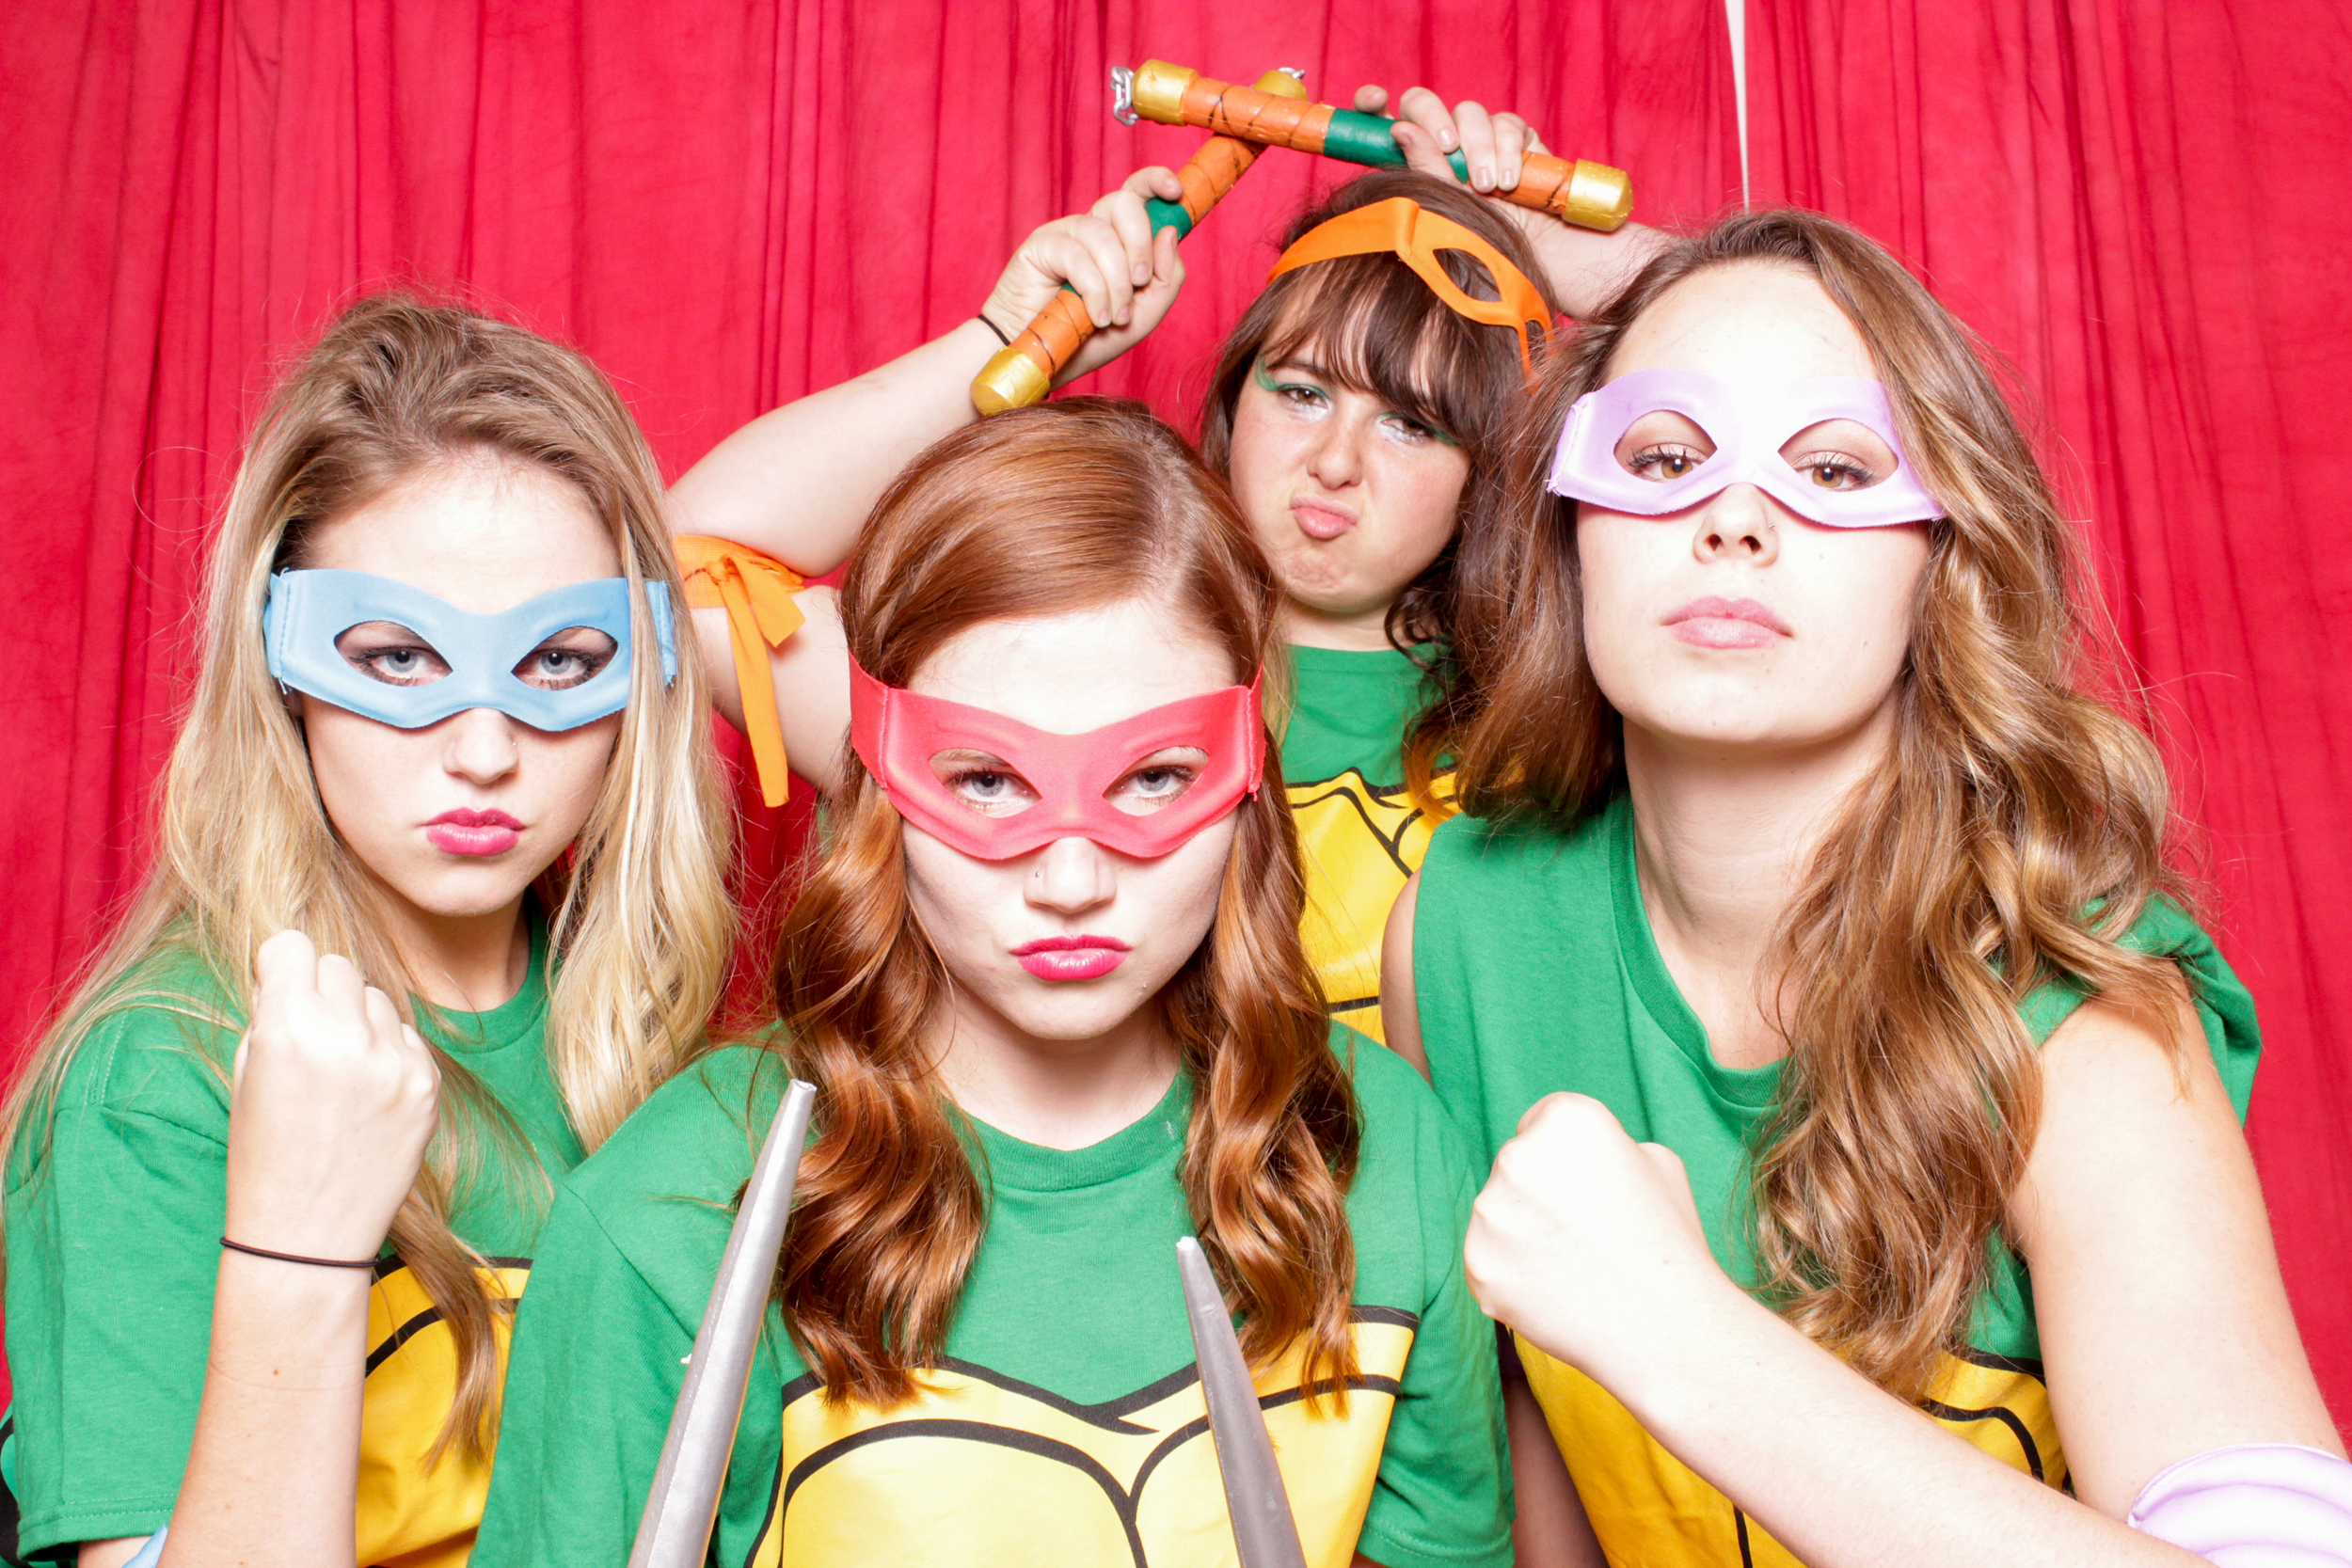 chico-photo-booth-rental-halloween-party-34.jpg